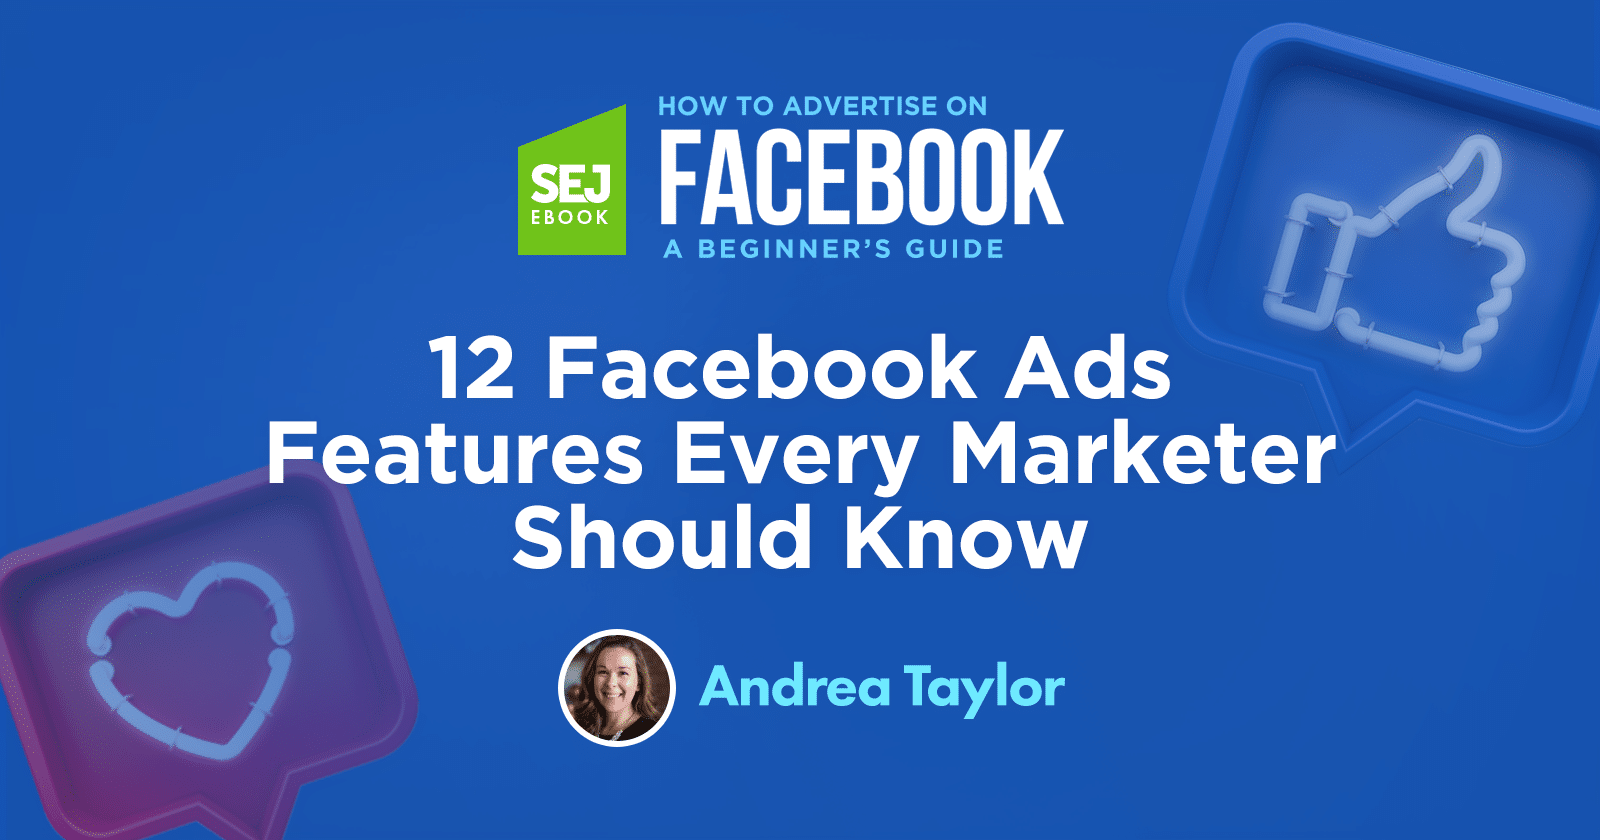 12 Facebook Ads Features Every Marketer Should Know via @sejournal, @afhammer